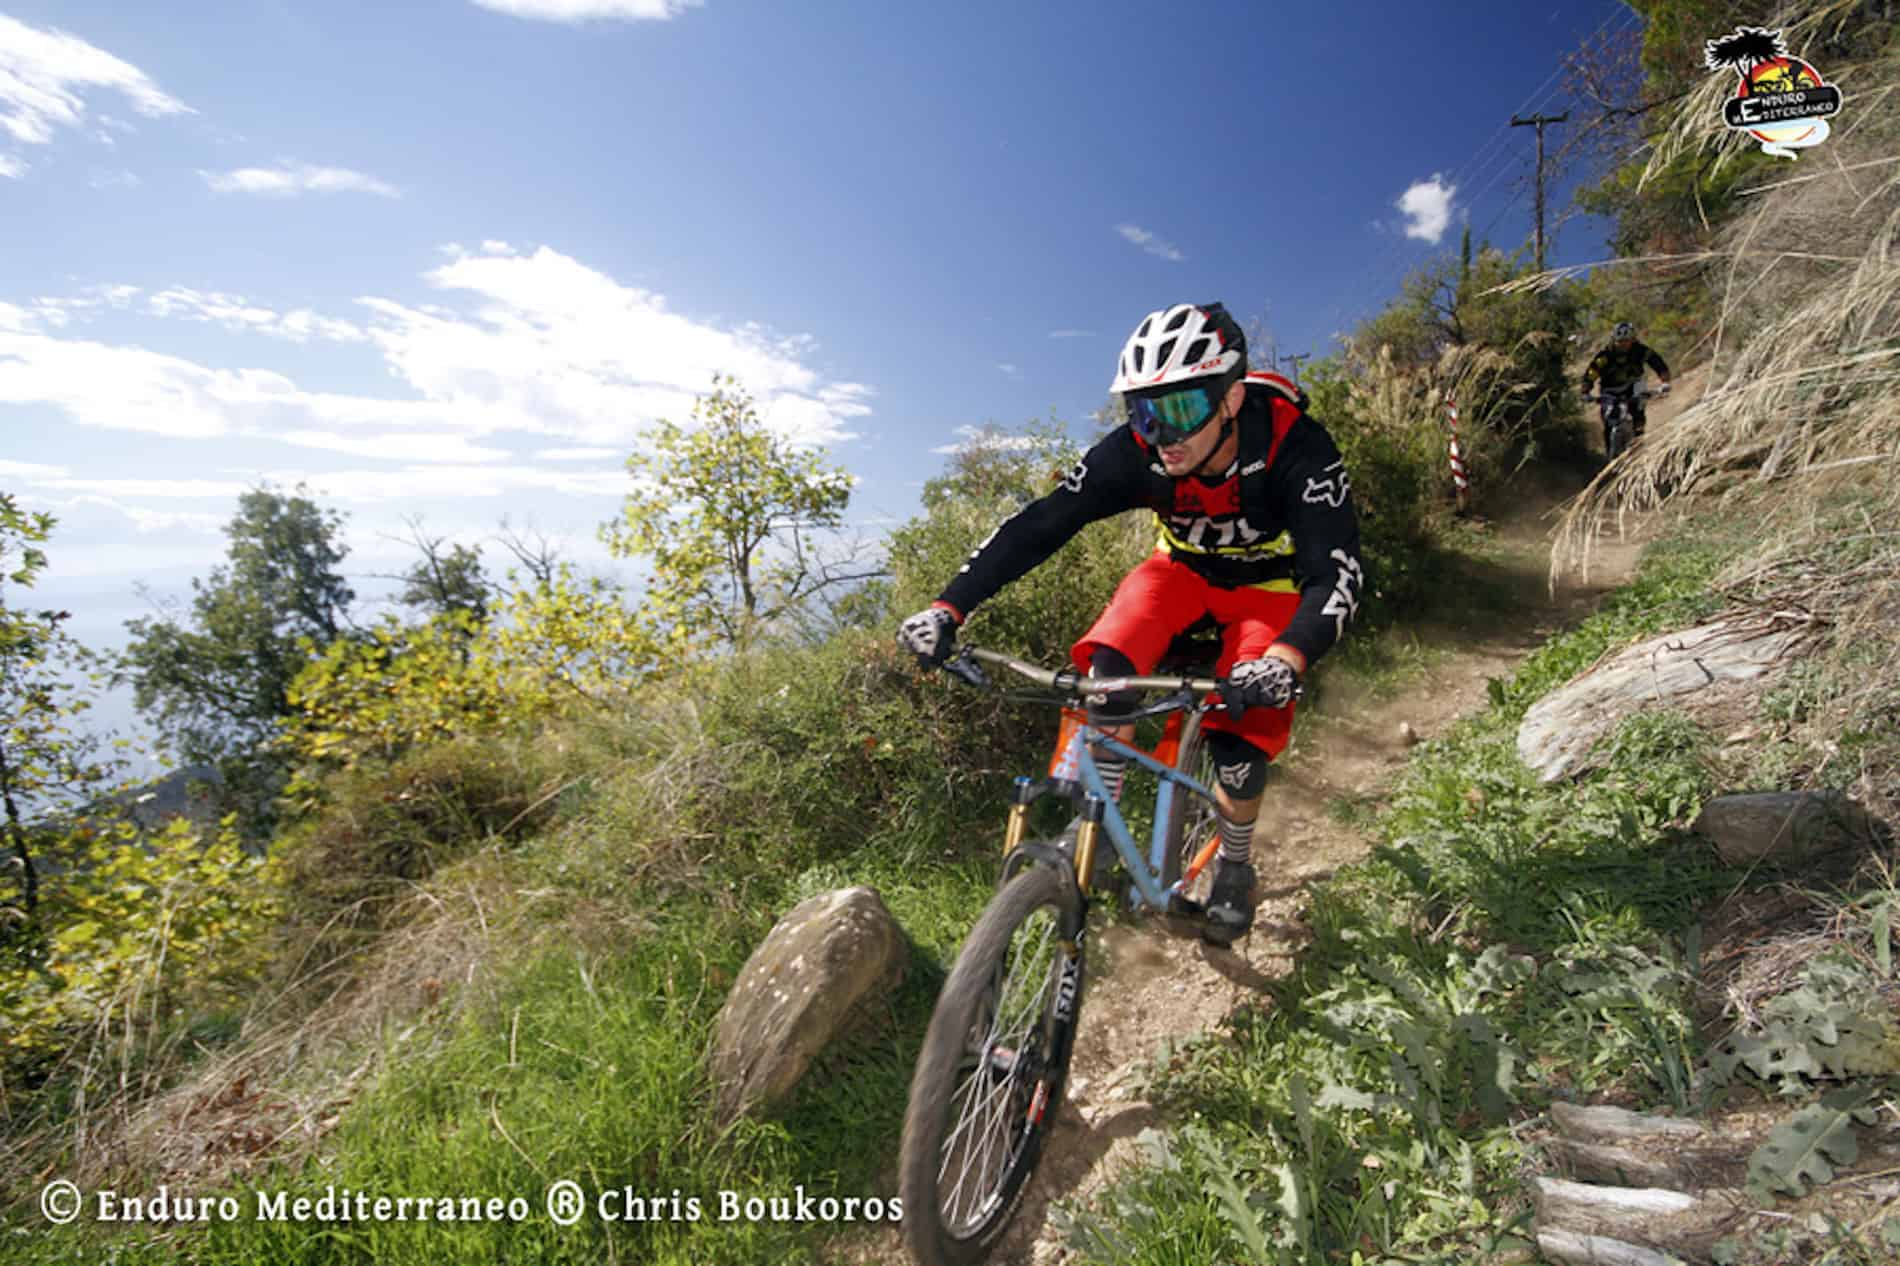 Enduro Mediterraneo Is Growing Bigger For 2015 4 Big